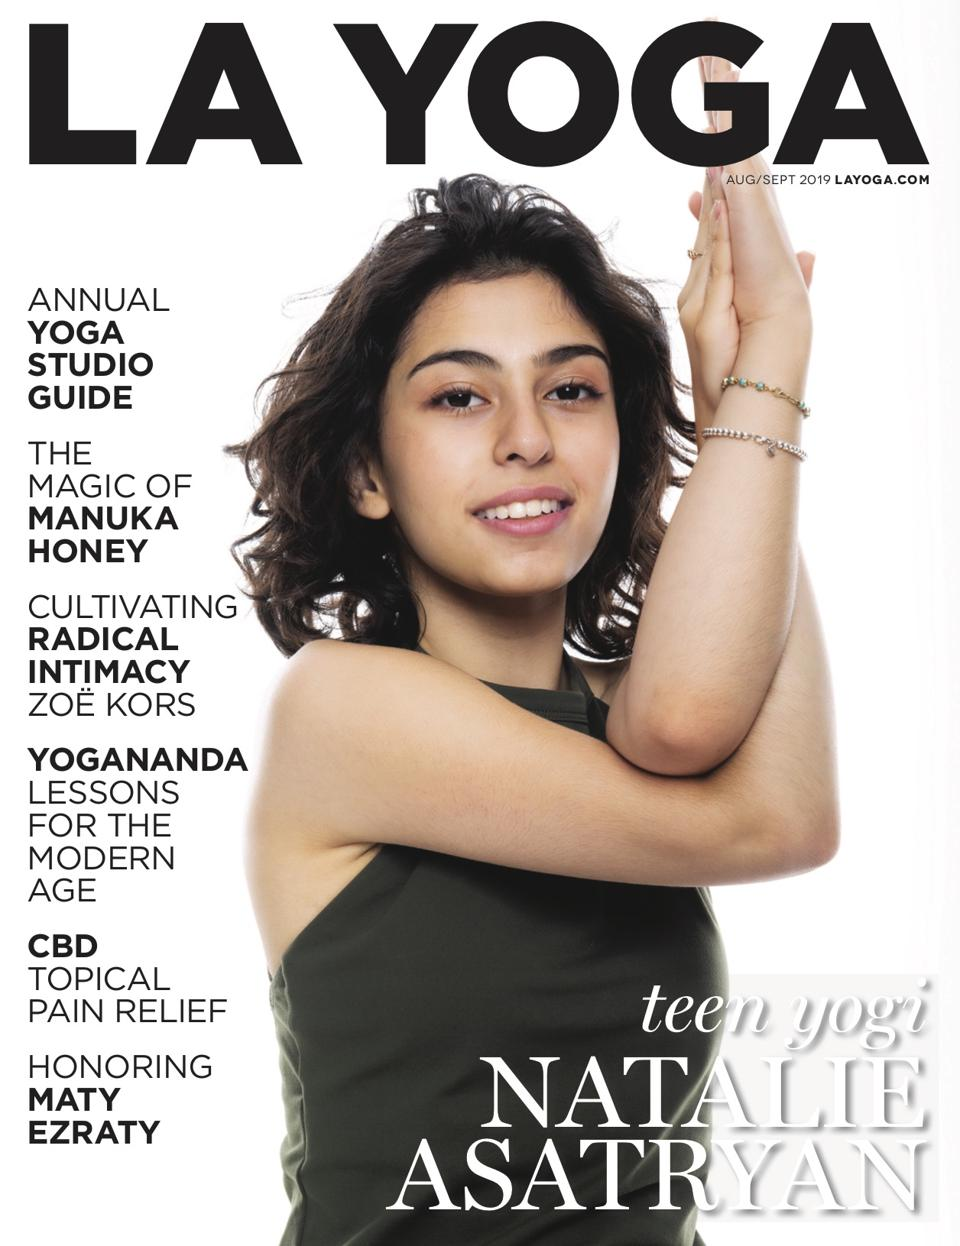 a young girl in a yoga pose on the cover of LA Yoga magazine